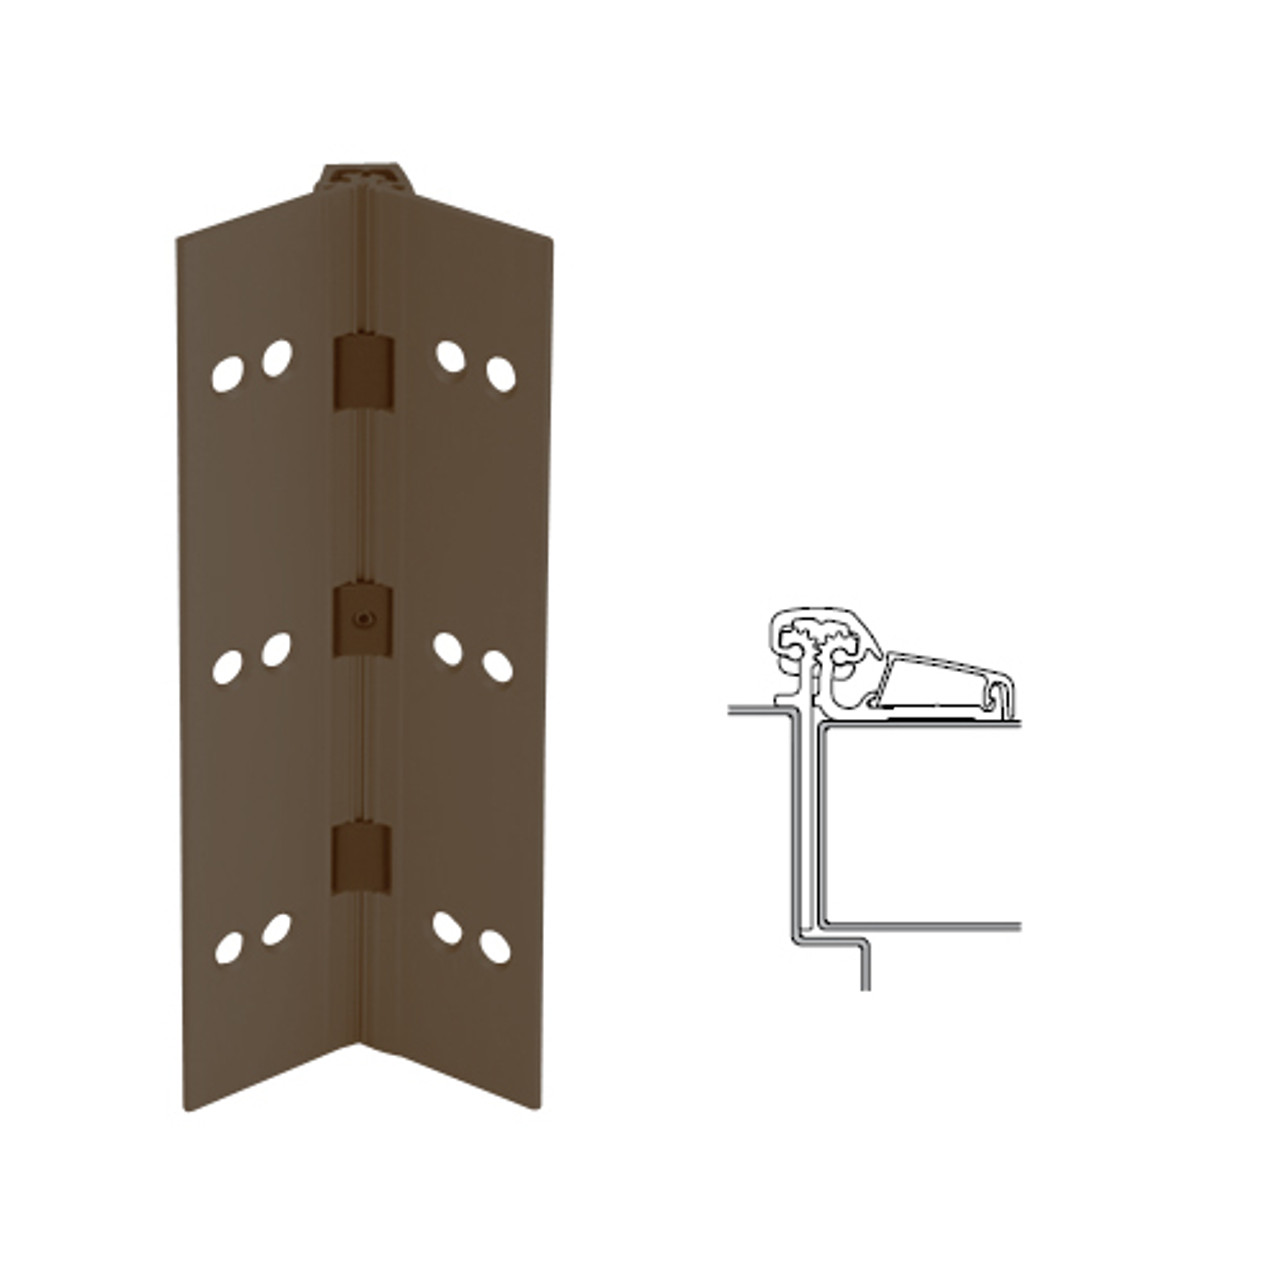 054XY-313AN-83-TEKWD IVES Adjustable Half Surface Continuous Geared Hinges with Wood Screws in Dark Bronze Anodized